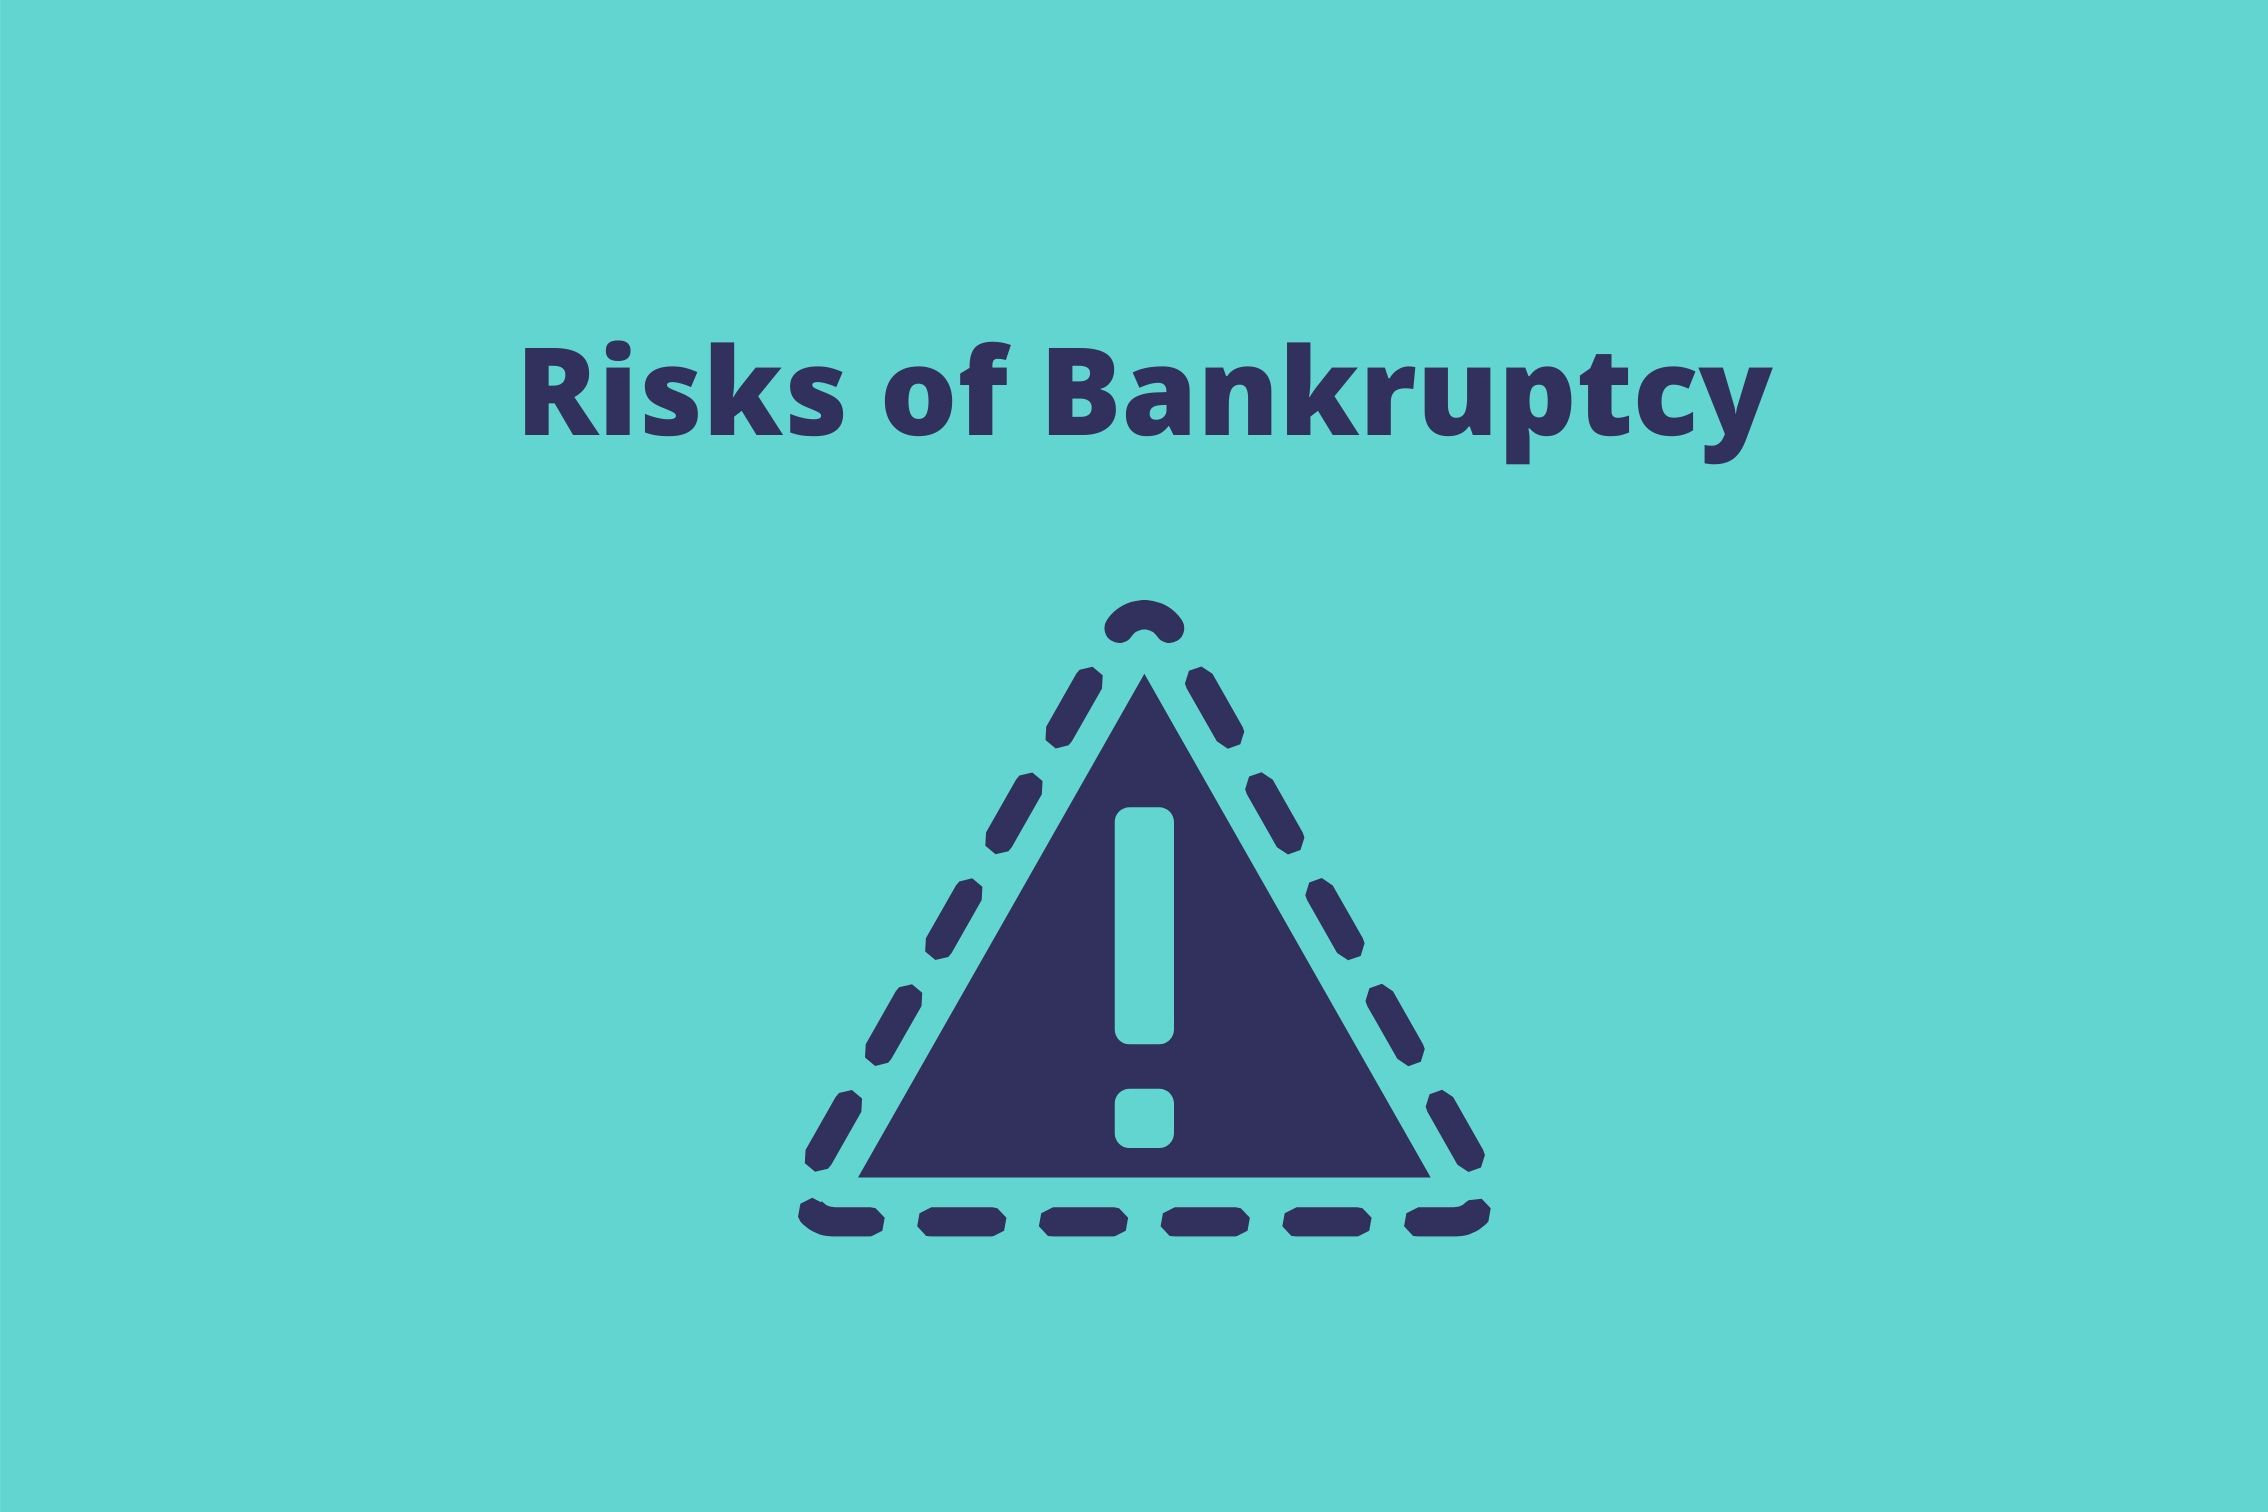 Risks of Bankruptcy